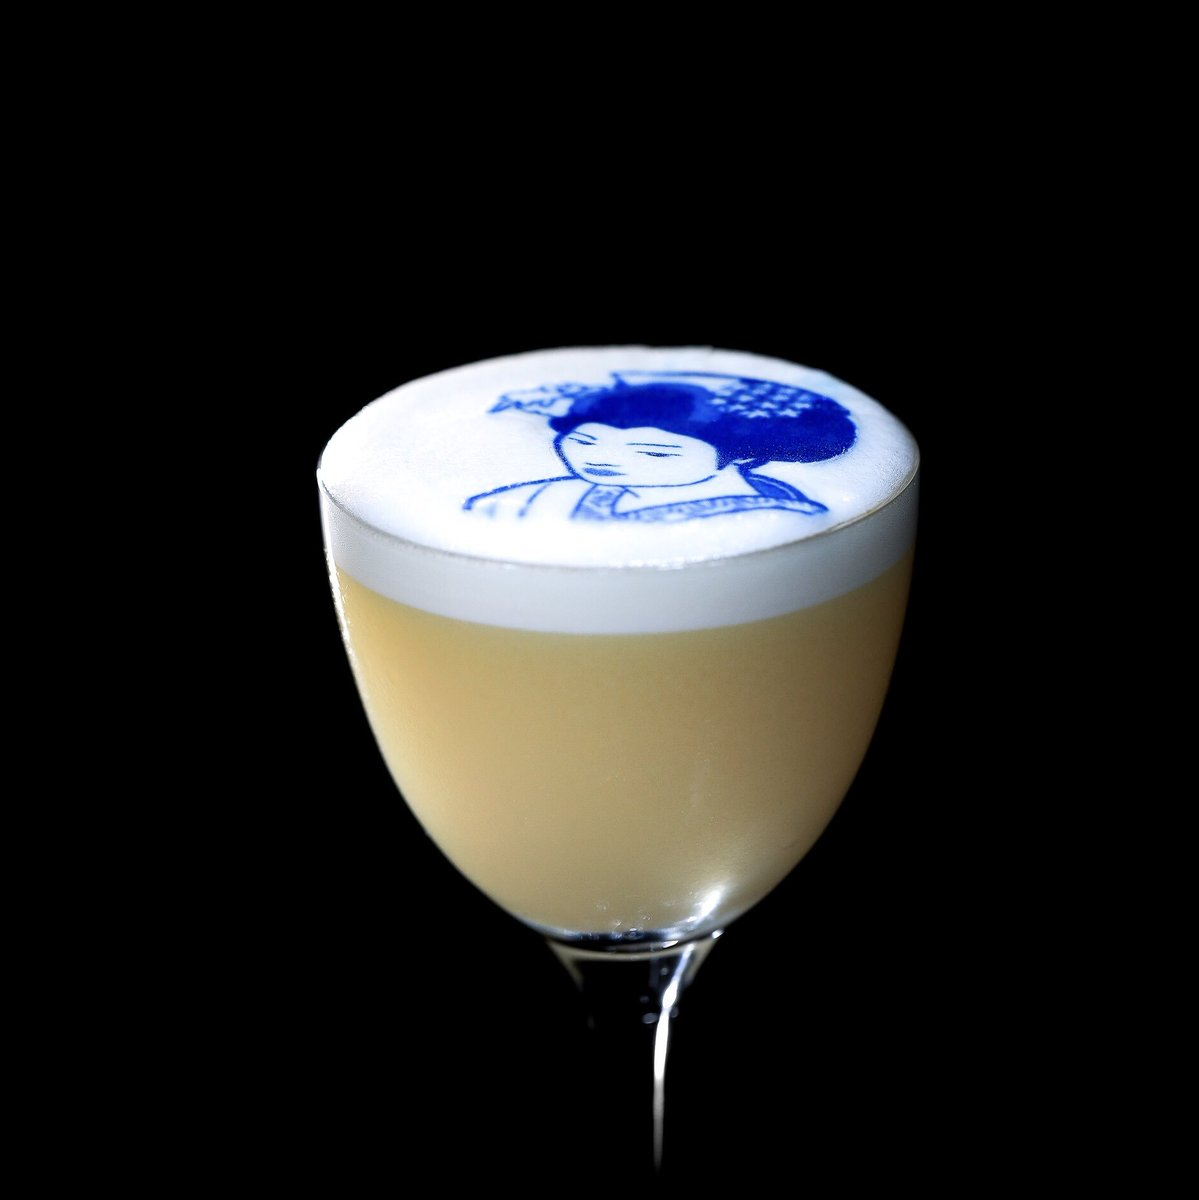 Now that&#39;s what I call a cocktail ! The White Geisha will be launching at @LuckyCatGR.....coming soon ! Gx #LuckyCatMayfair <br>http://pic.twitter.com/XdqVYuAwr5